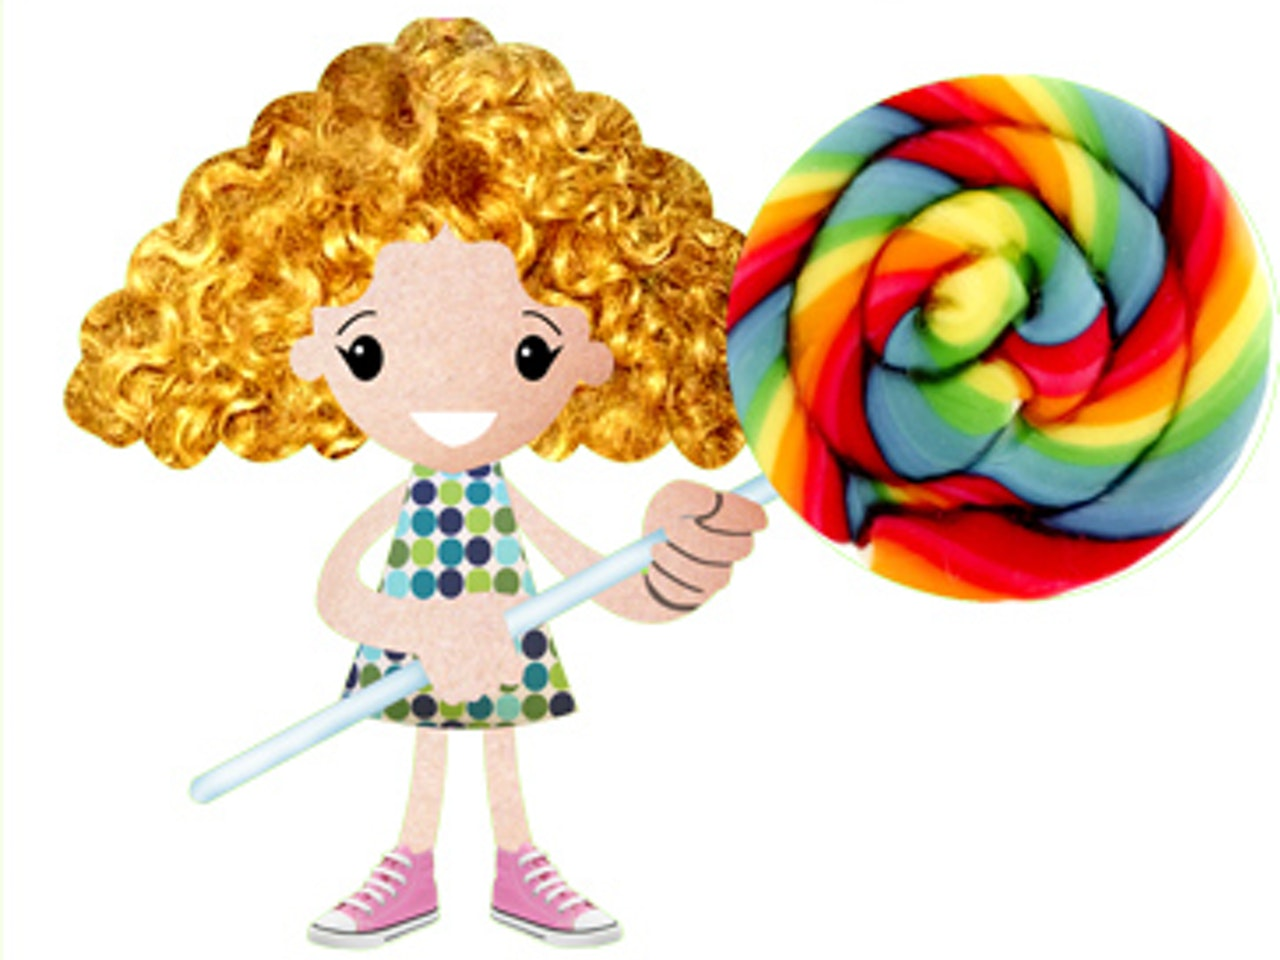 curly hair girl with lollipo collage funny happy humorous comical colourful graphic illustration   retro vintage 1950s textile patterns